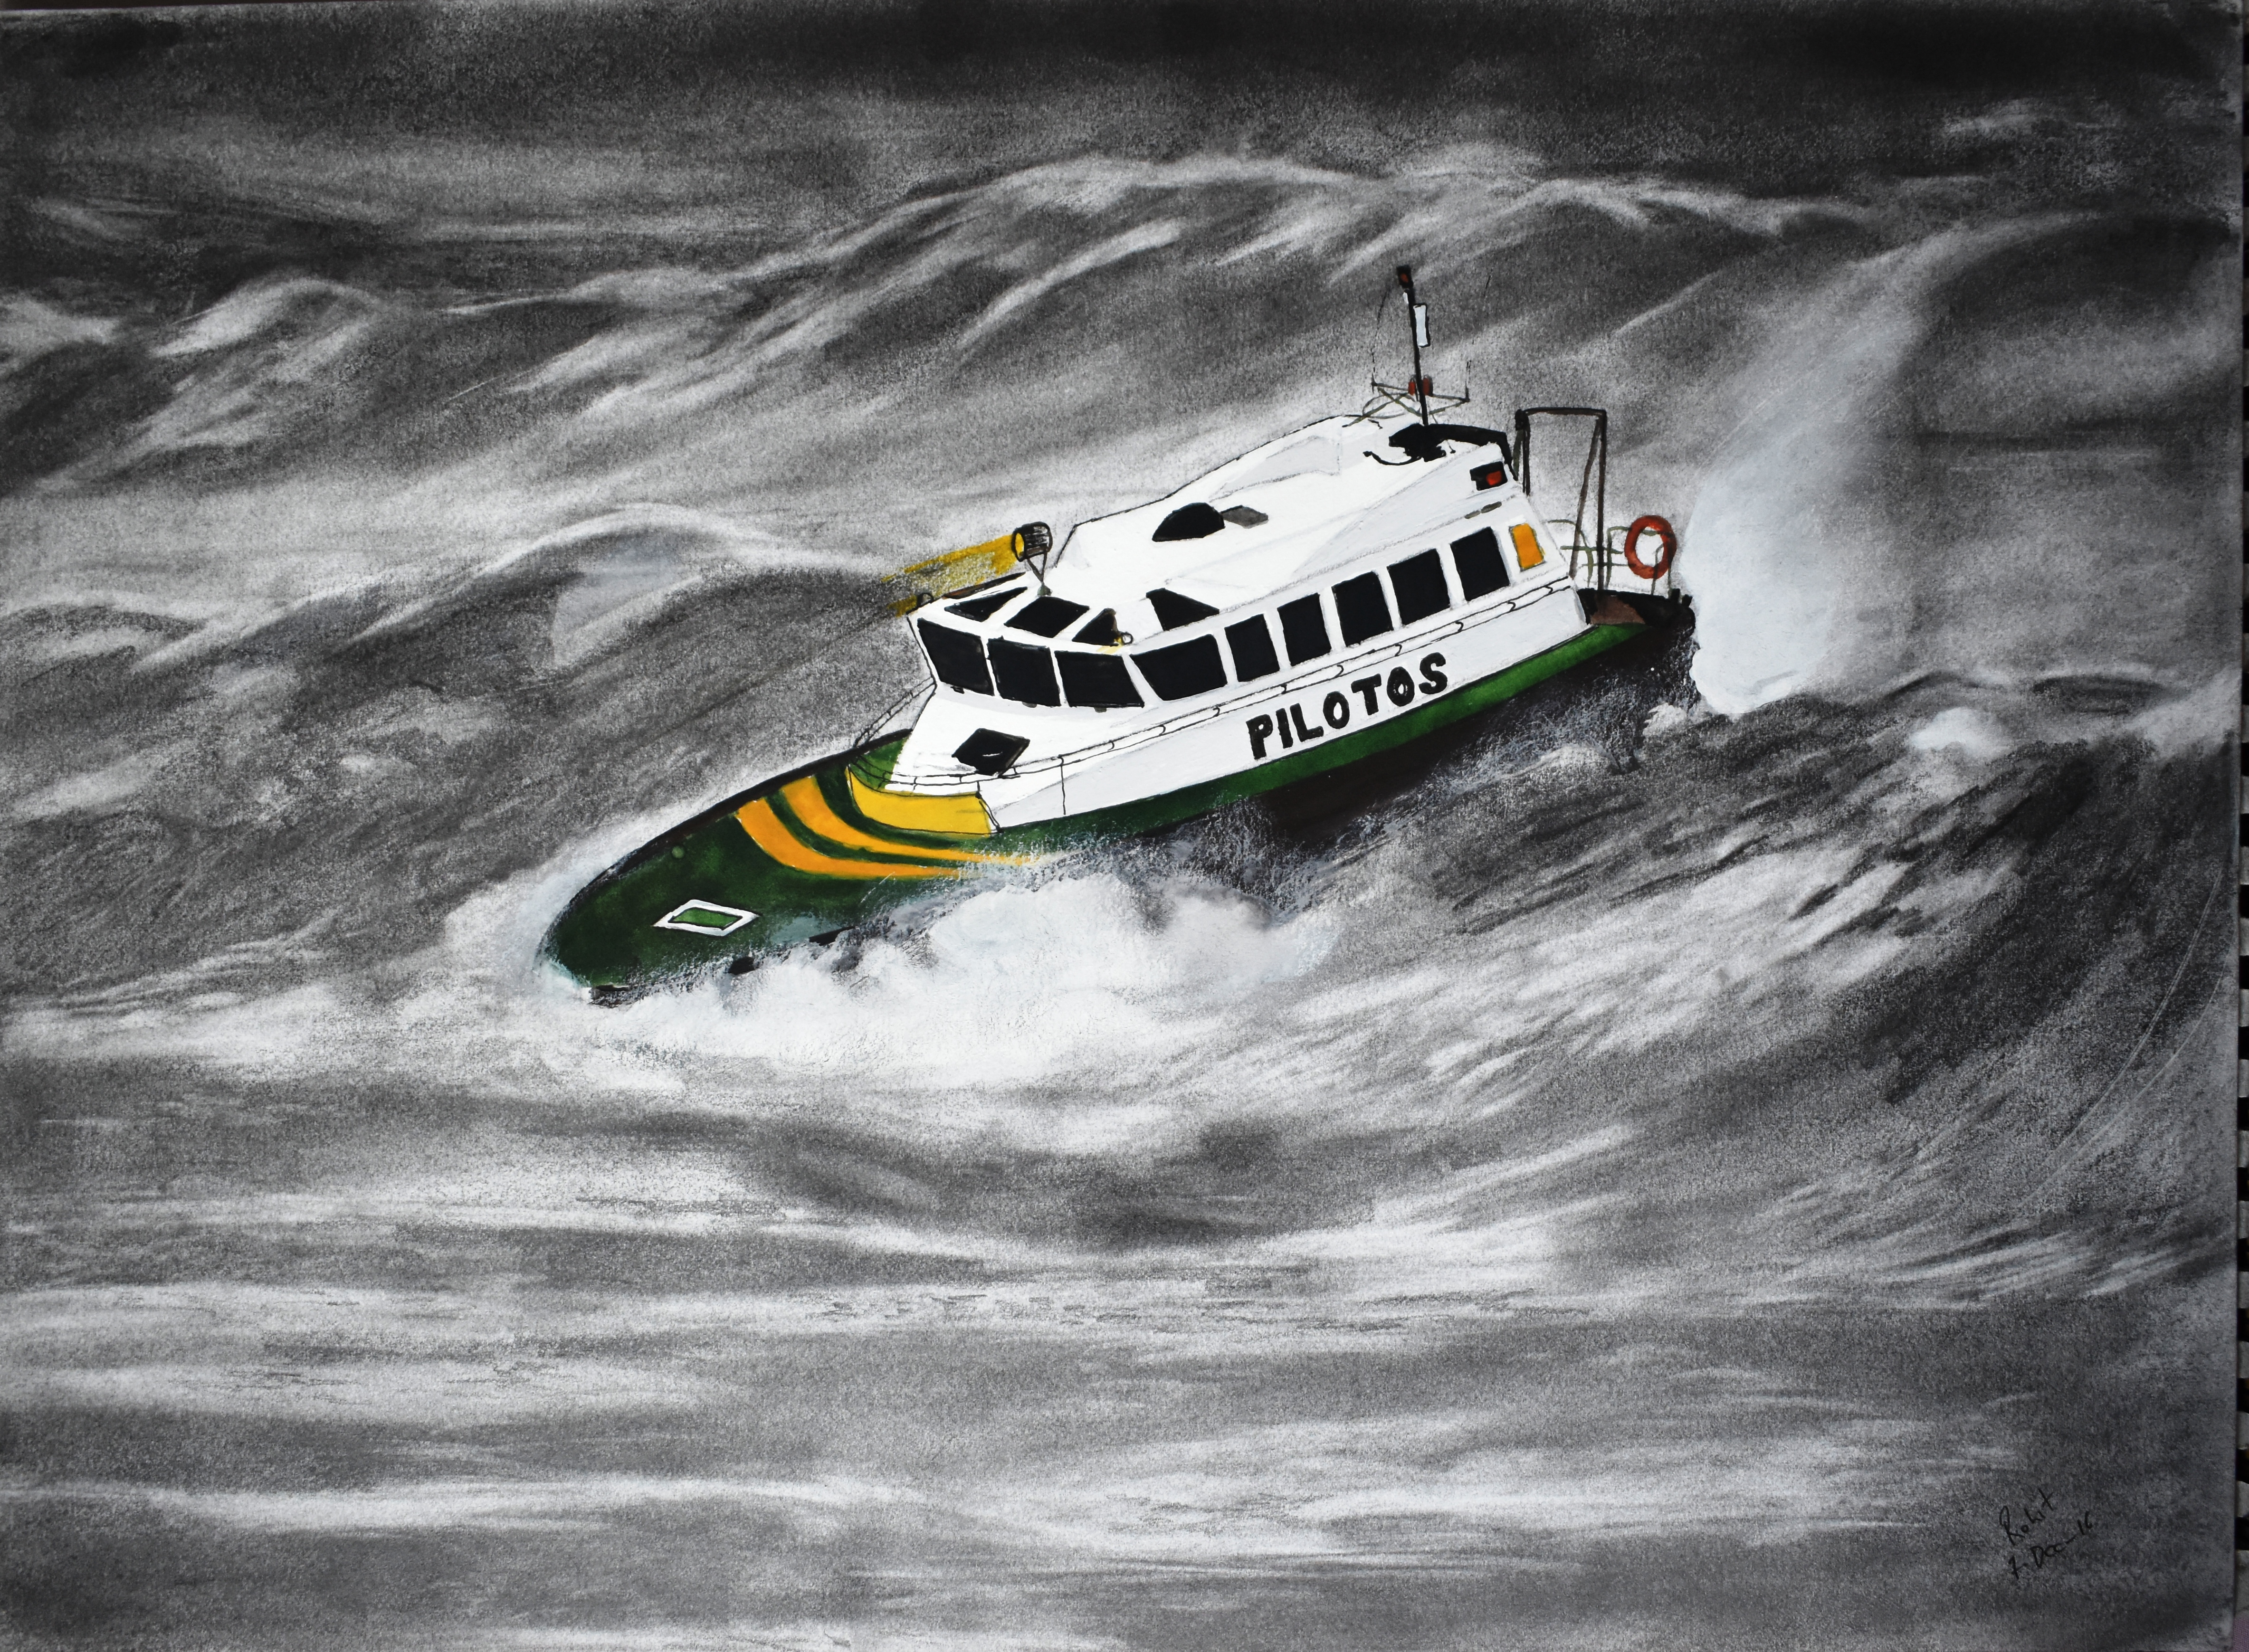 Boat in Storm  200 GSM PAPER, 12″ x 18″  CHARCOAL / WATERCOLOUR.